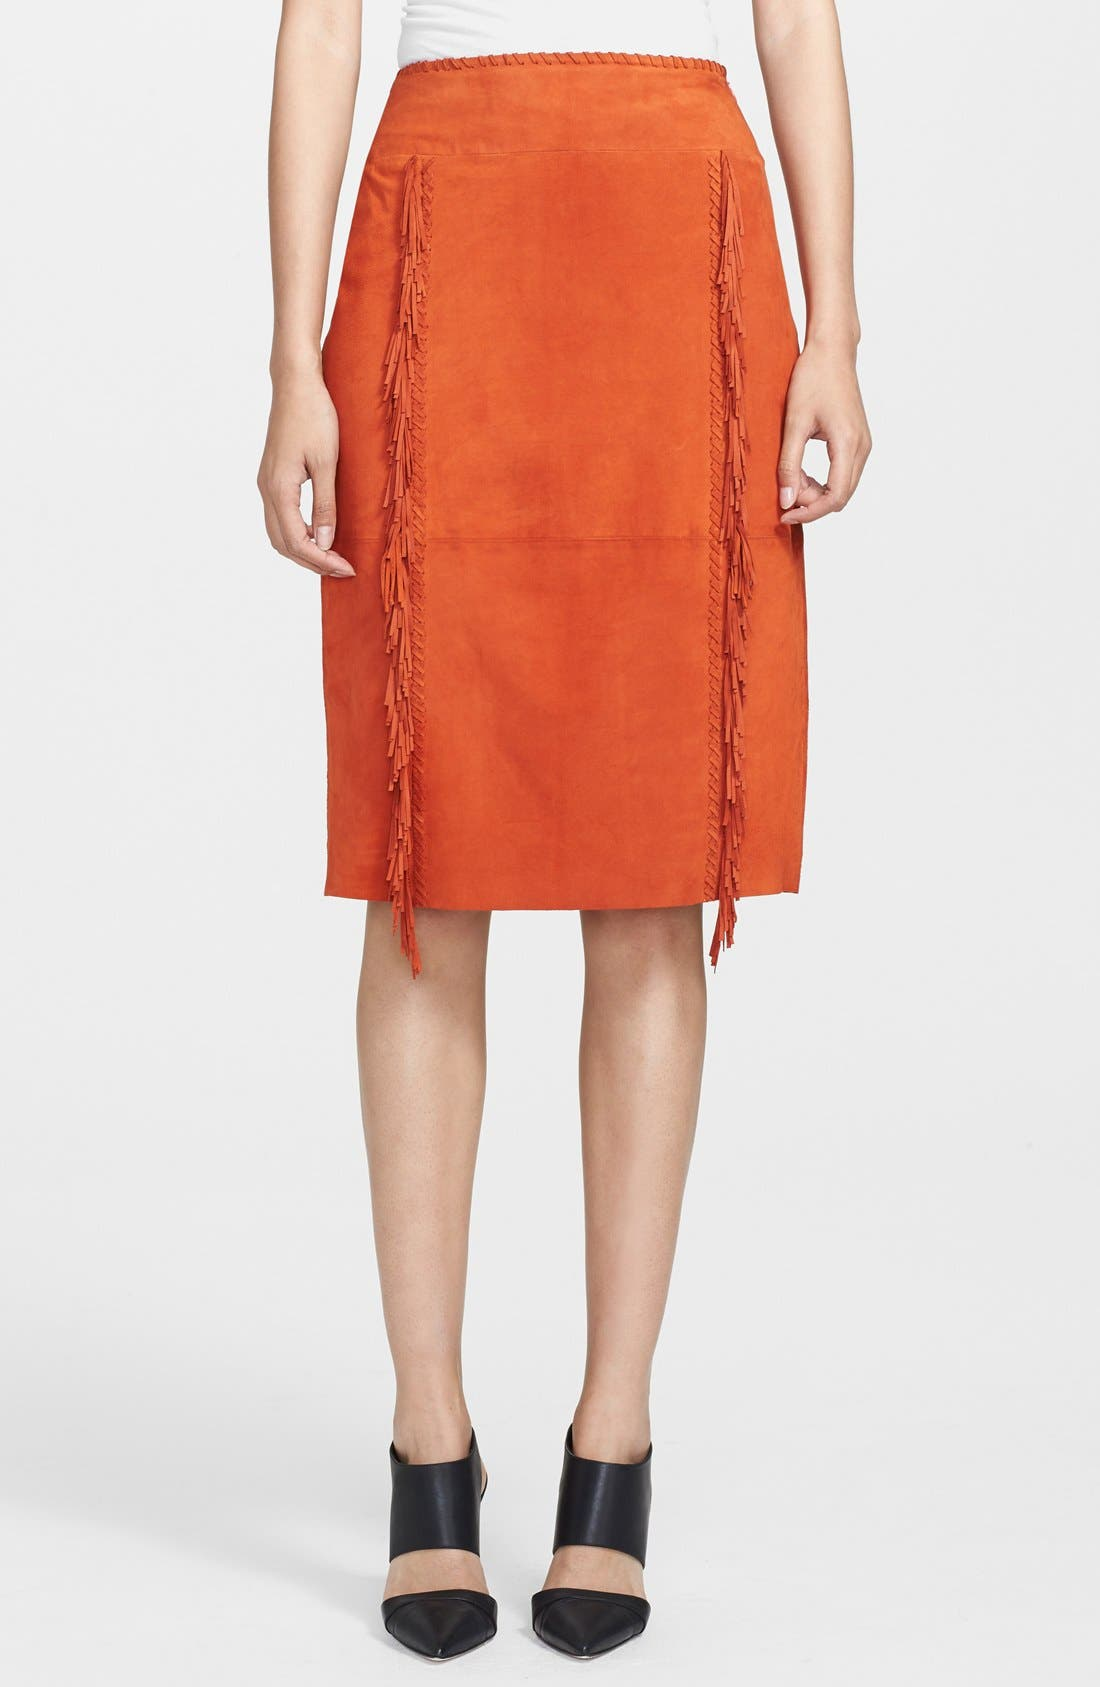 Alternate Image 1 Selected - Tamara Mellon Fringe Detail Suede Pencil Skirt